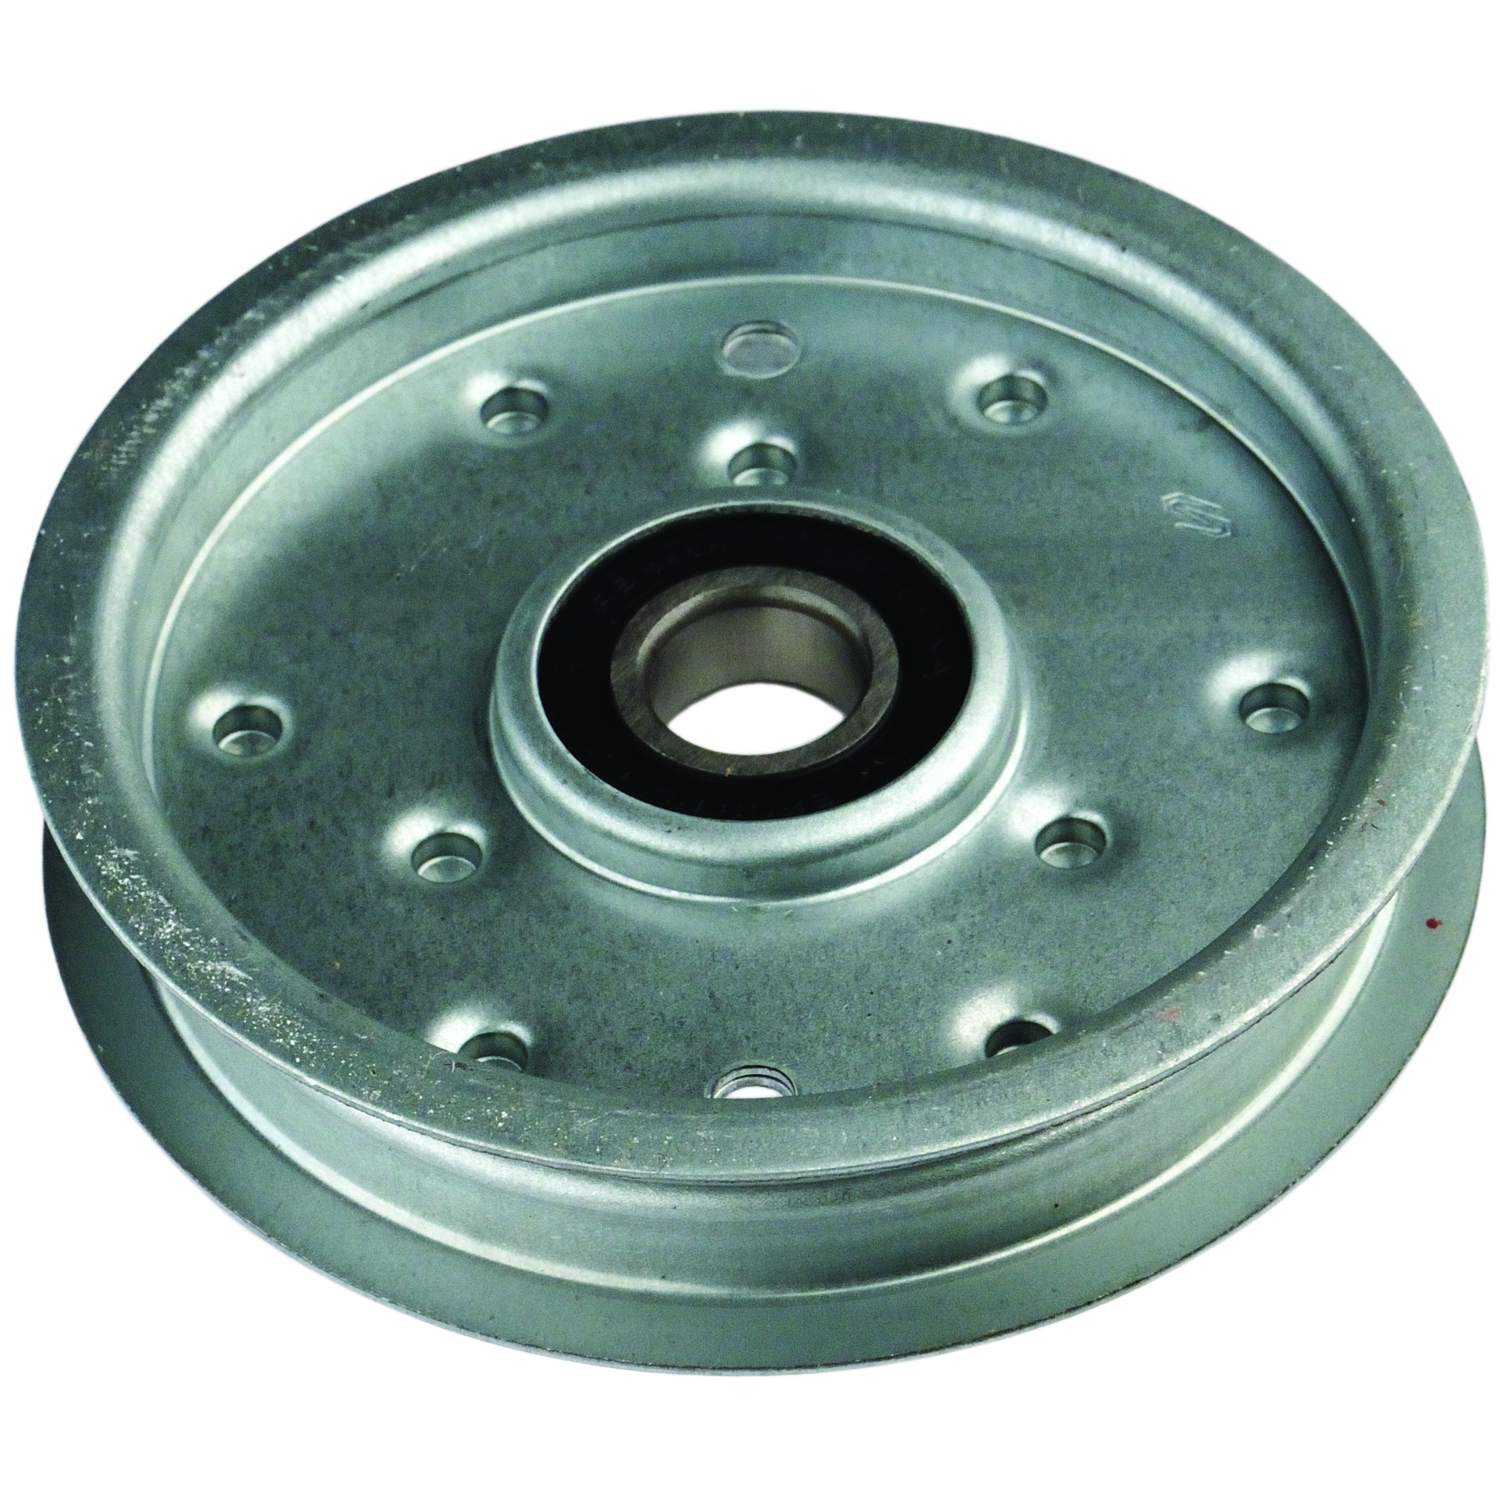 Idler Pulley : Idler pulley for murray ma